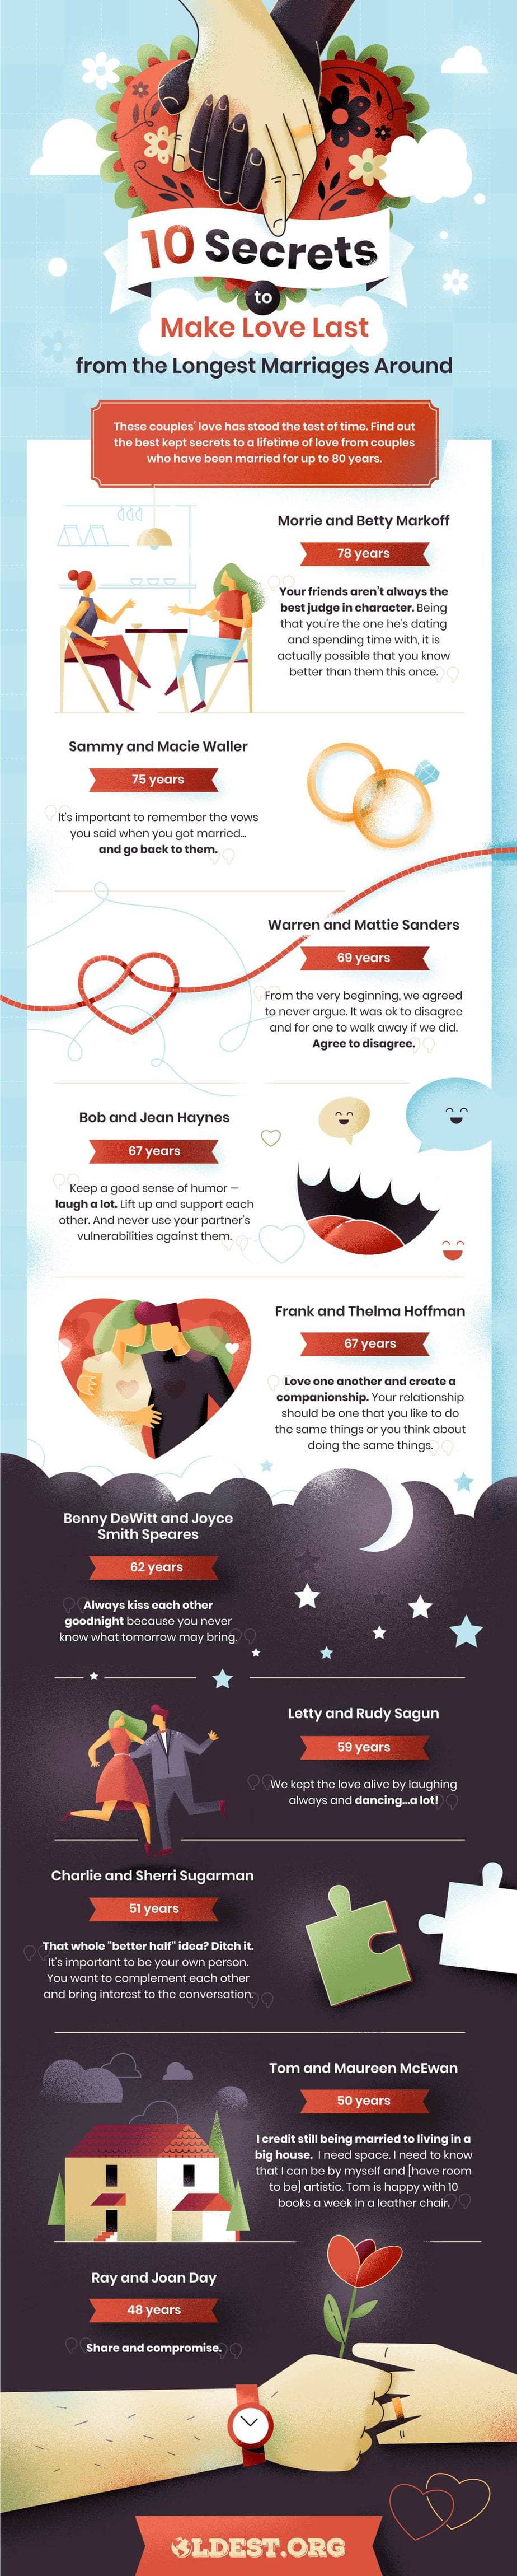 longest marriages advice infographic